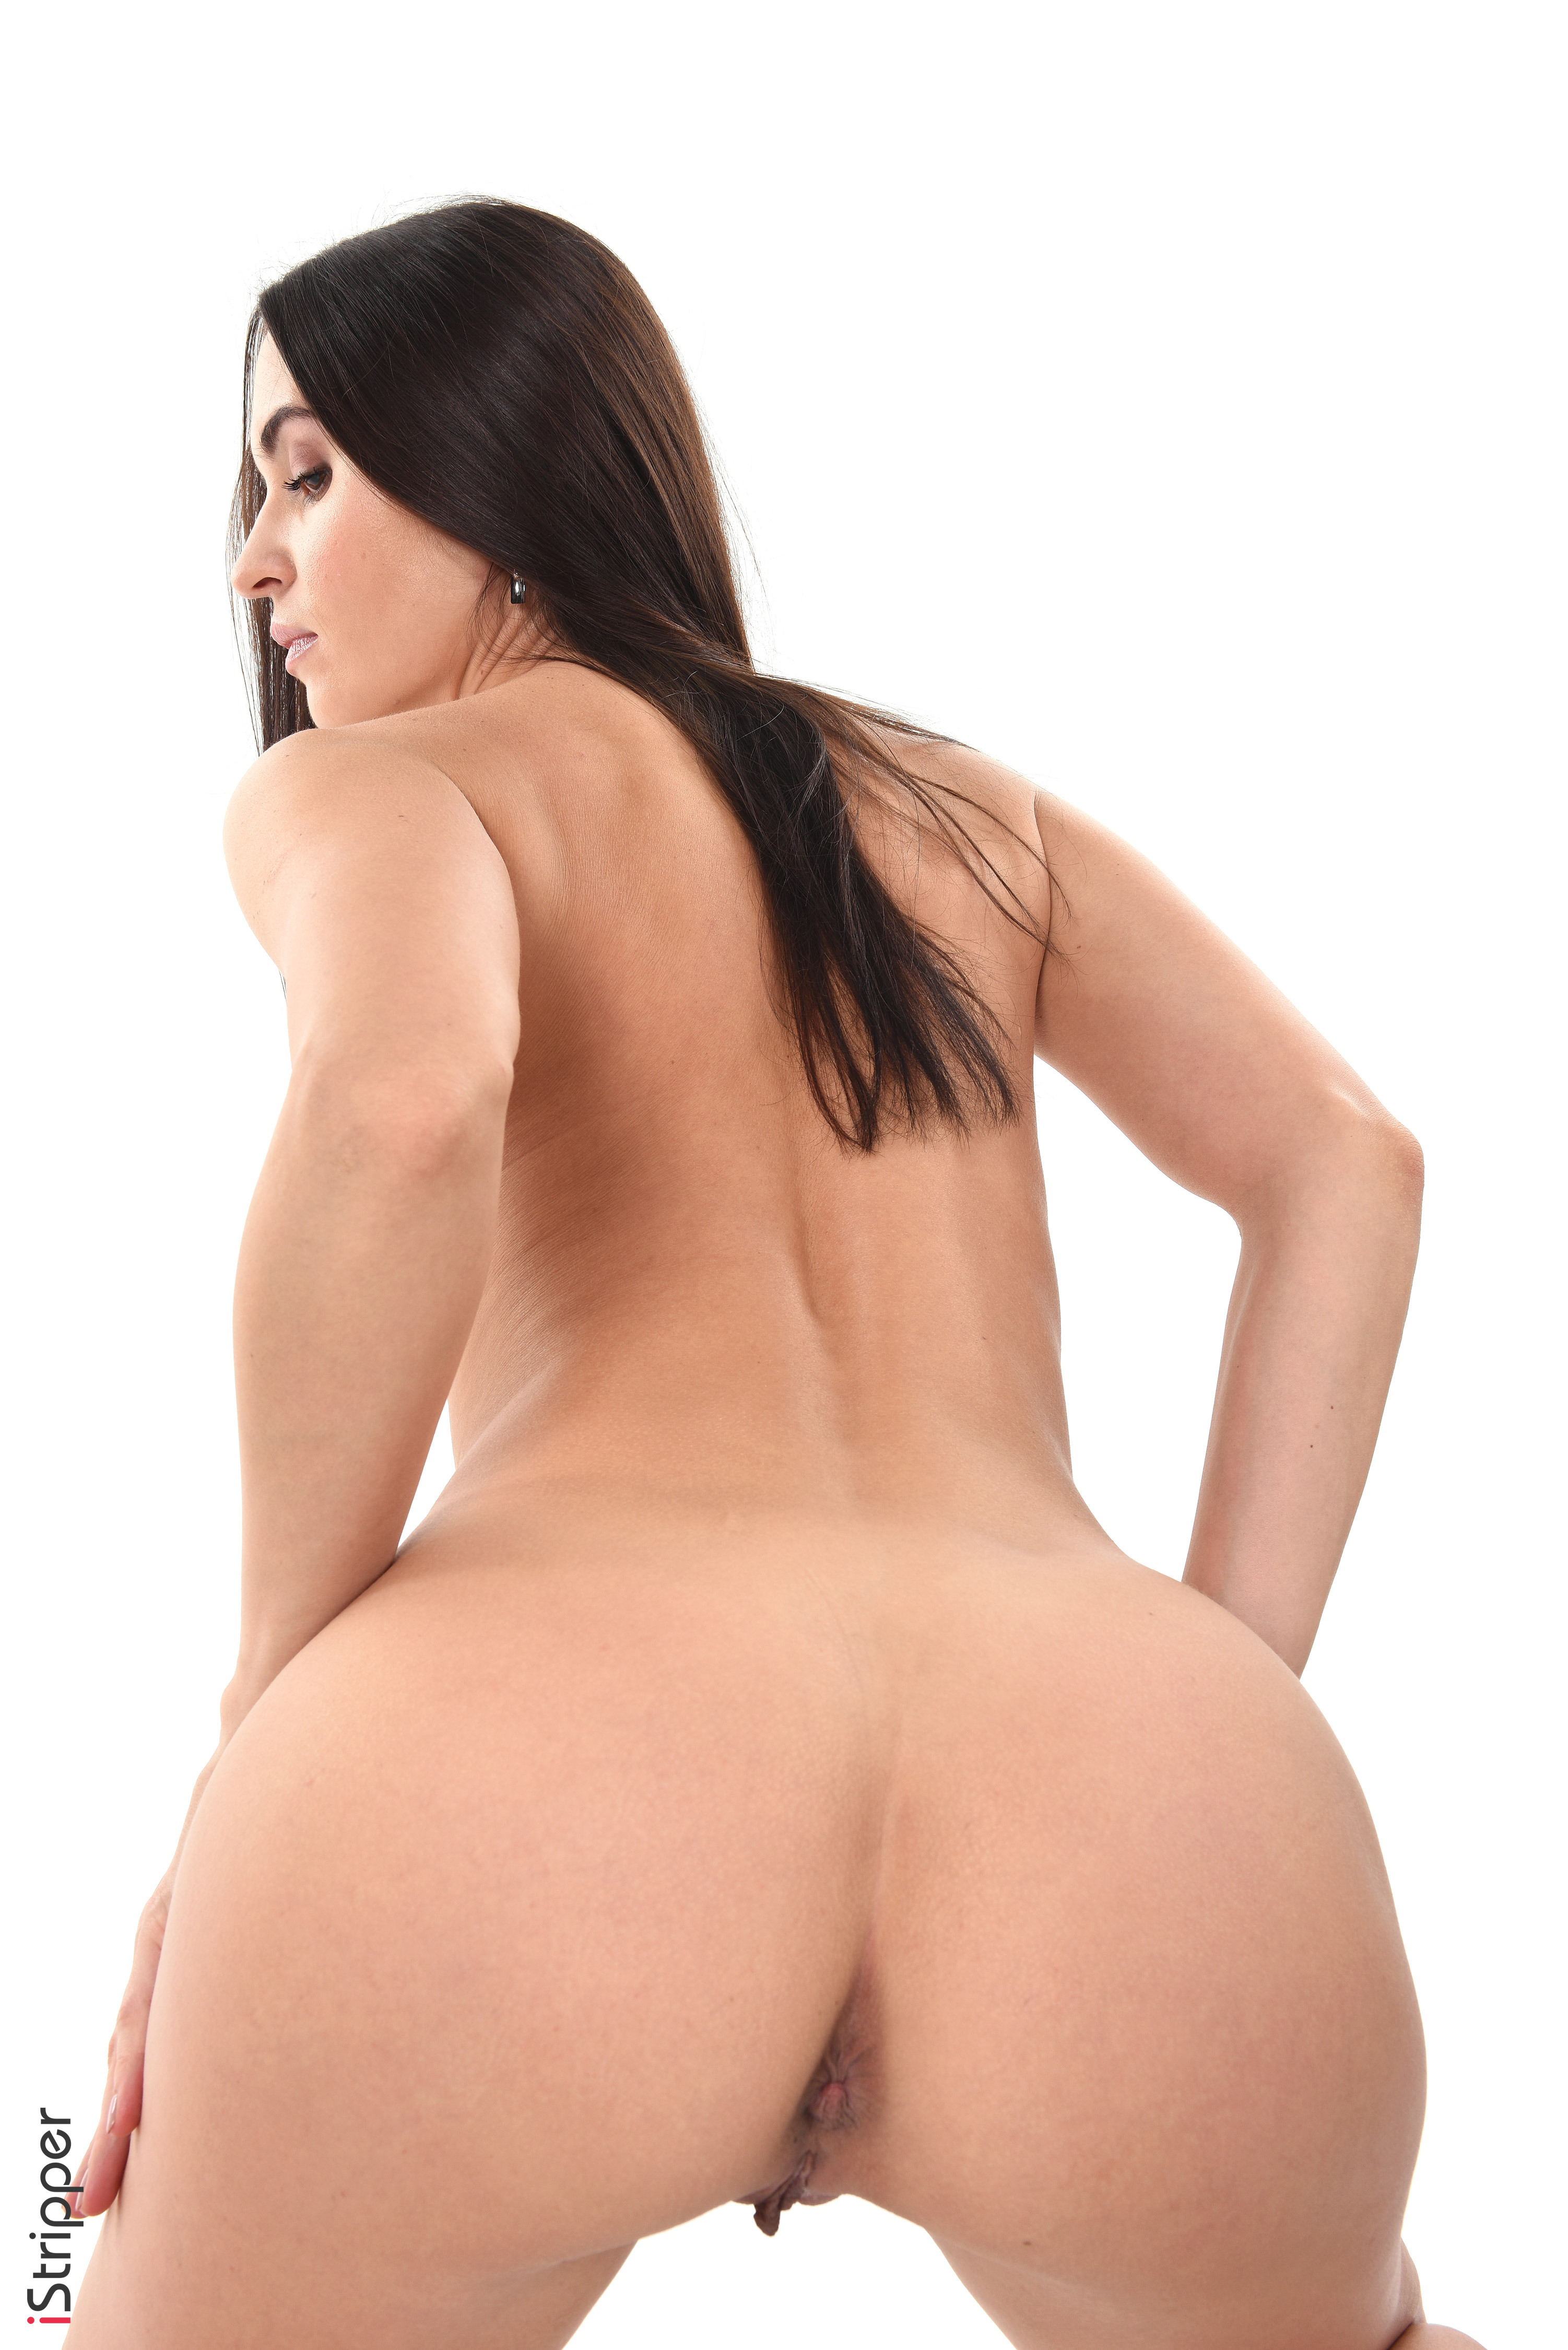 hot Bare wallpapers